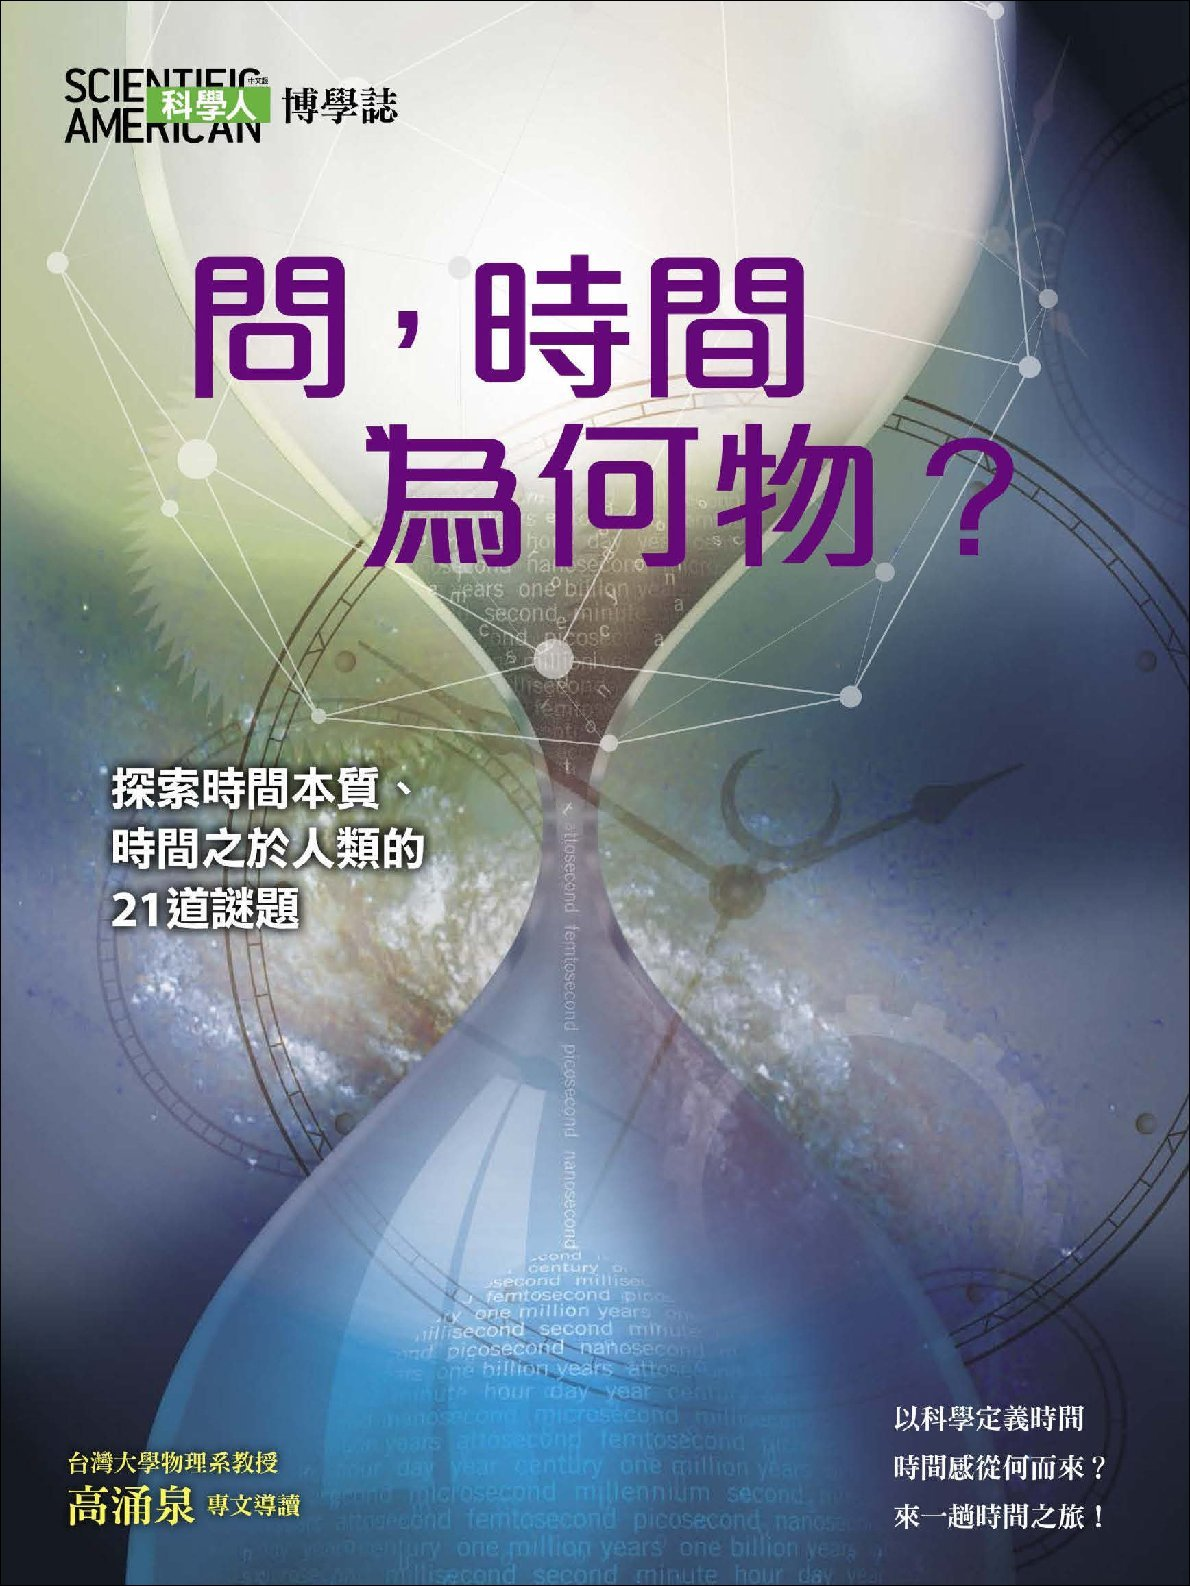 Scientific American Special Collector's Edition 《科學人精采100》特輯 Digital